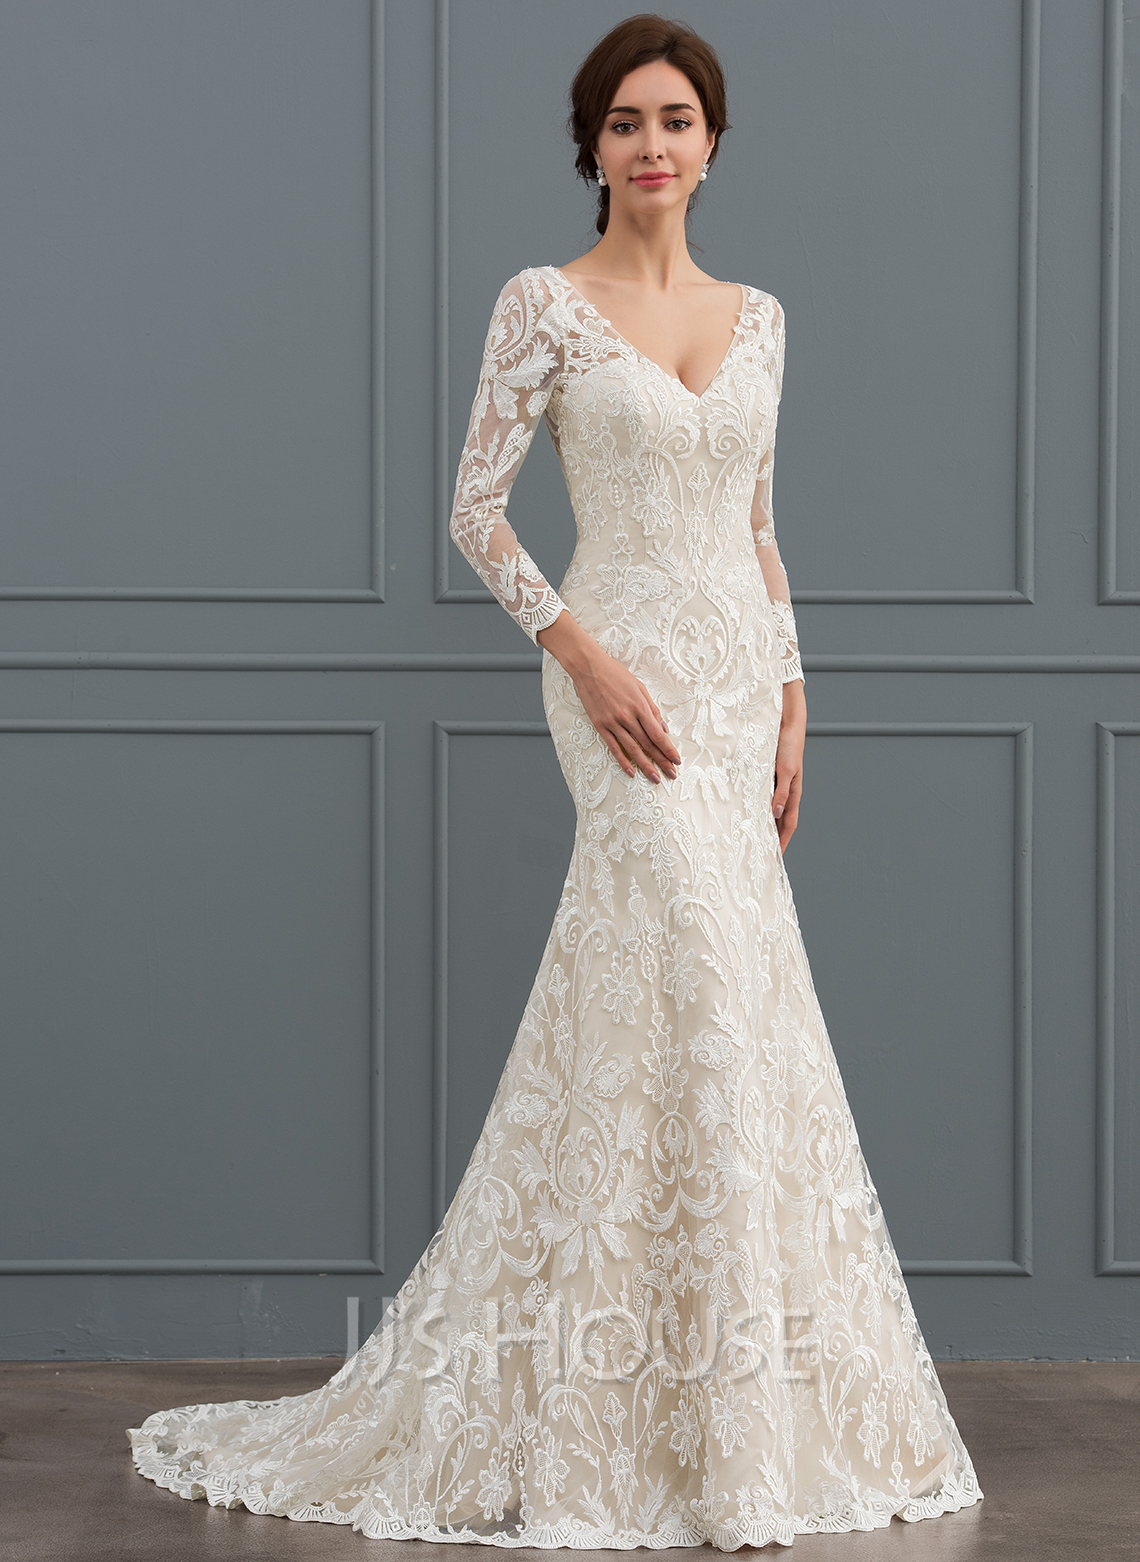 Wedding dresses affordable under 100 jjshouse trumpetmermaid v neck sweep train lace wedding dress ombrellifo Gallery